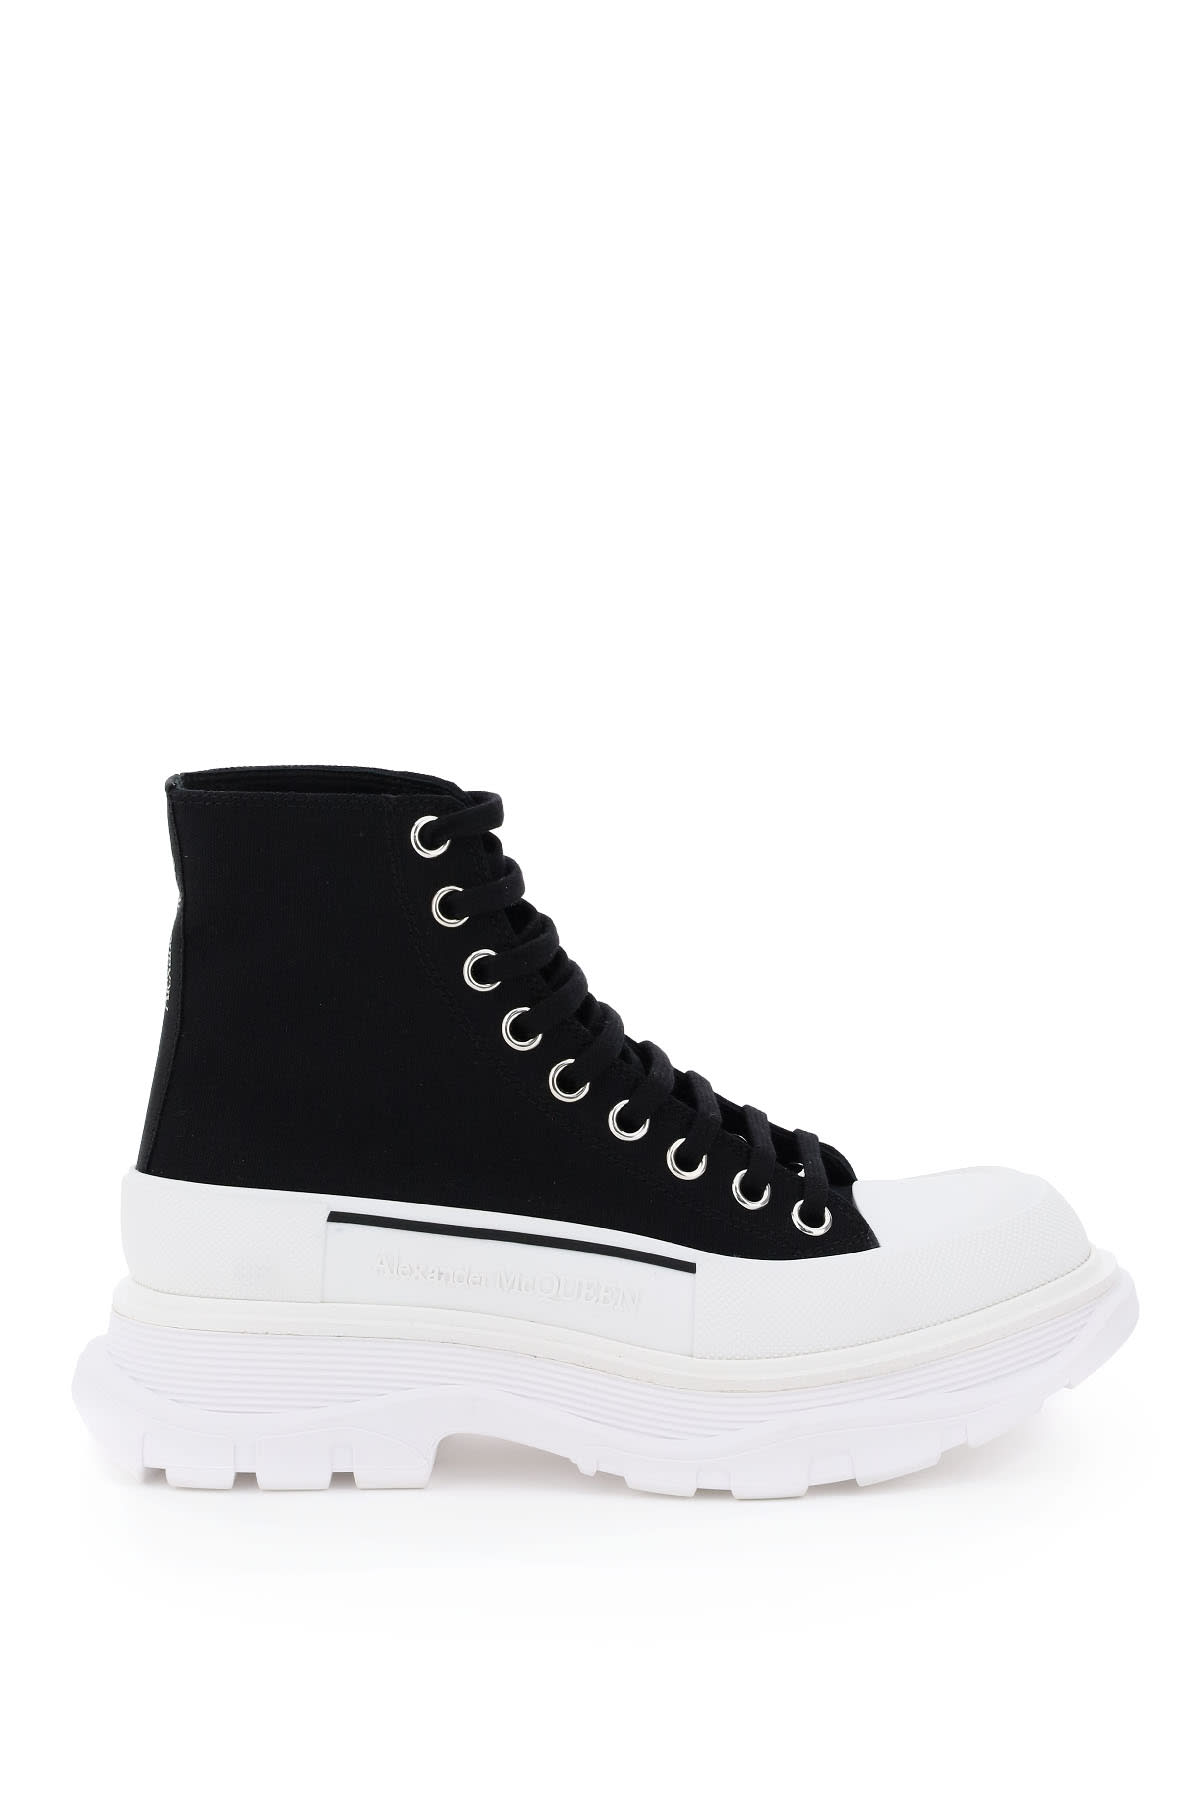 Alexander McQueen Tread Sleek Boots